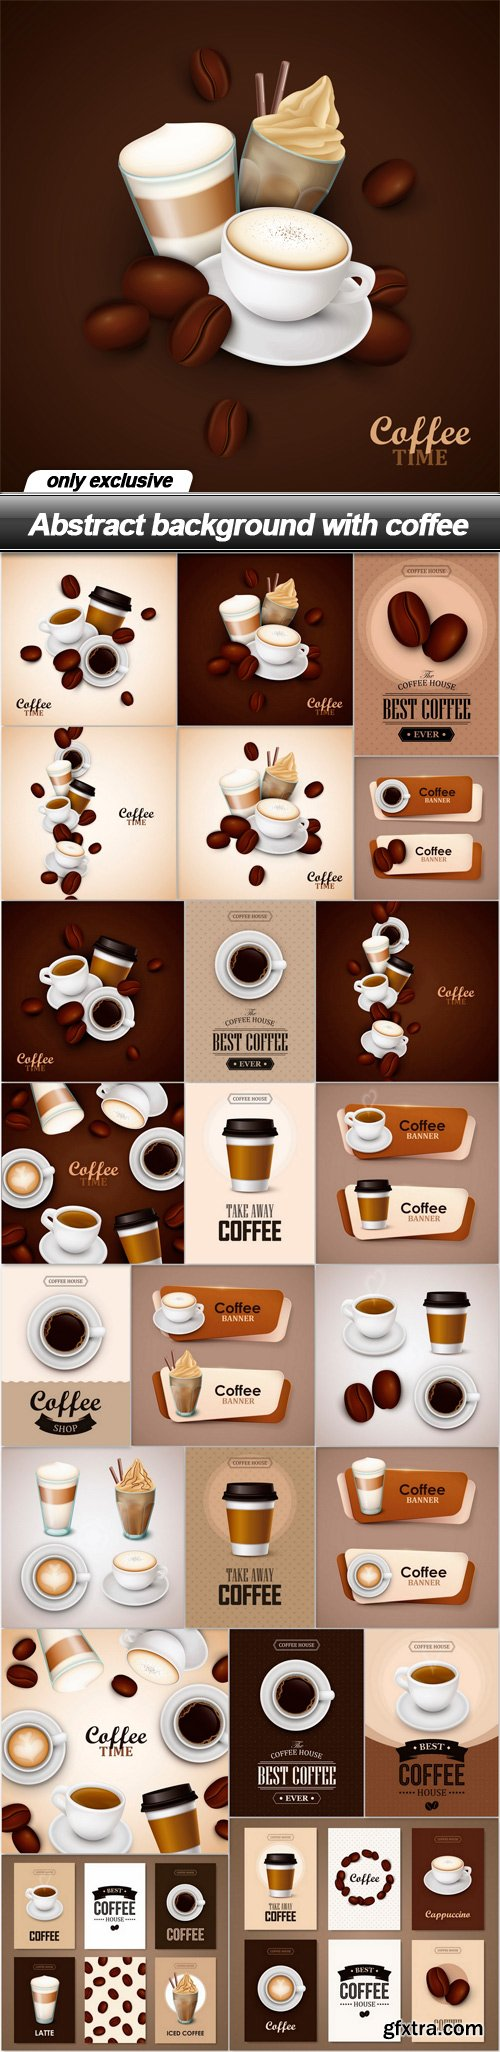 Abstract background with coffee - 23 EPS